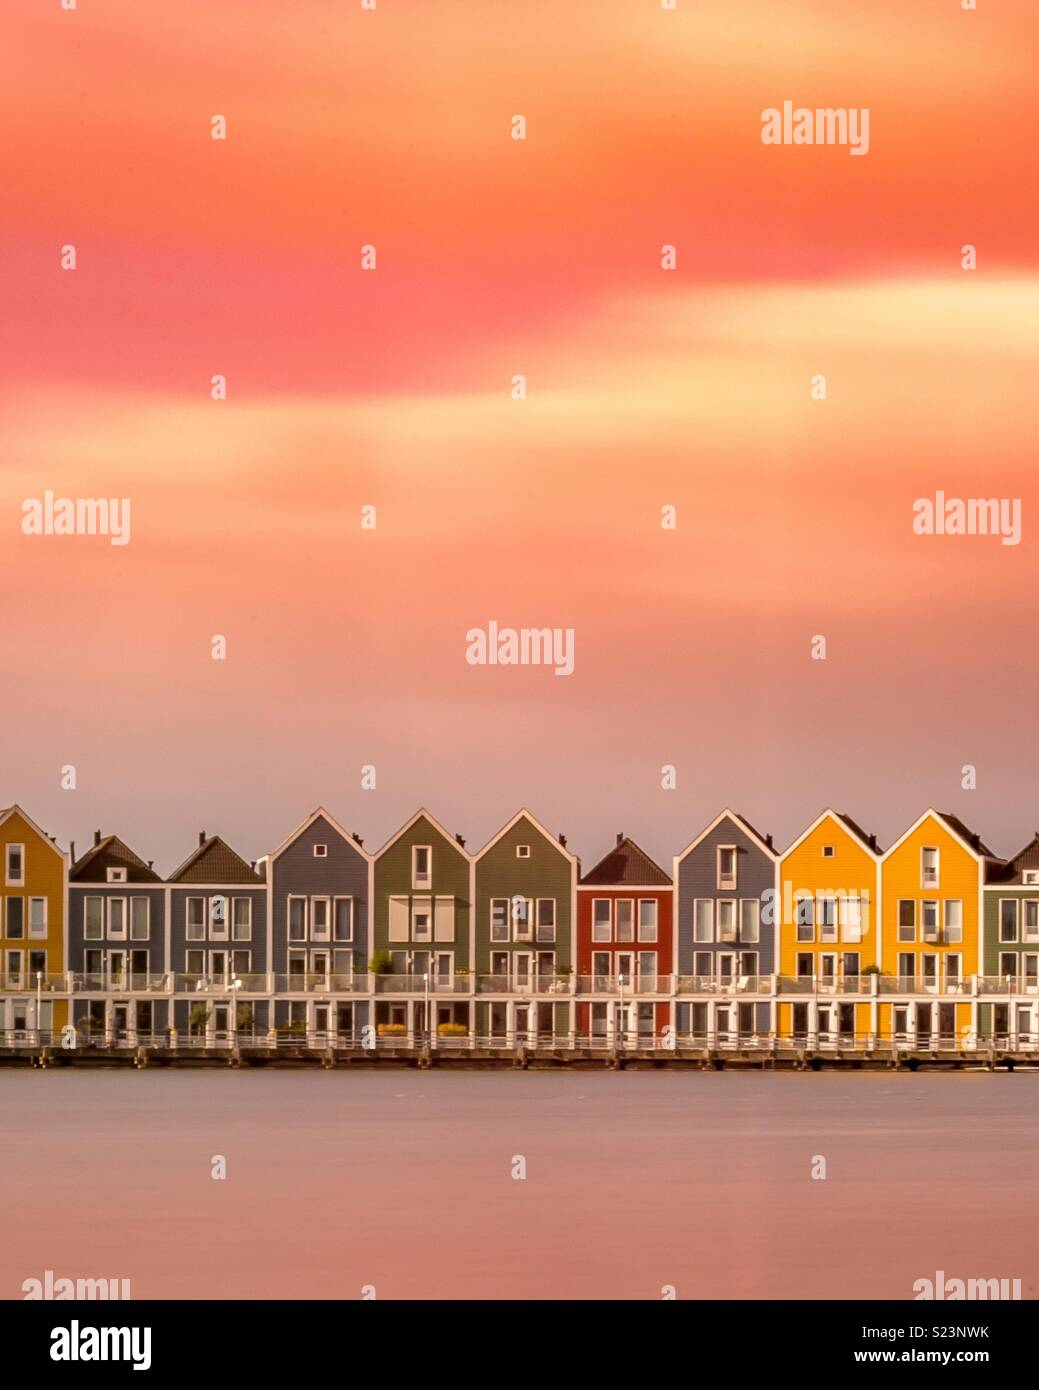 Maisons colorées, Pays-Bas Photo Stock